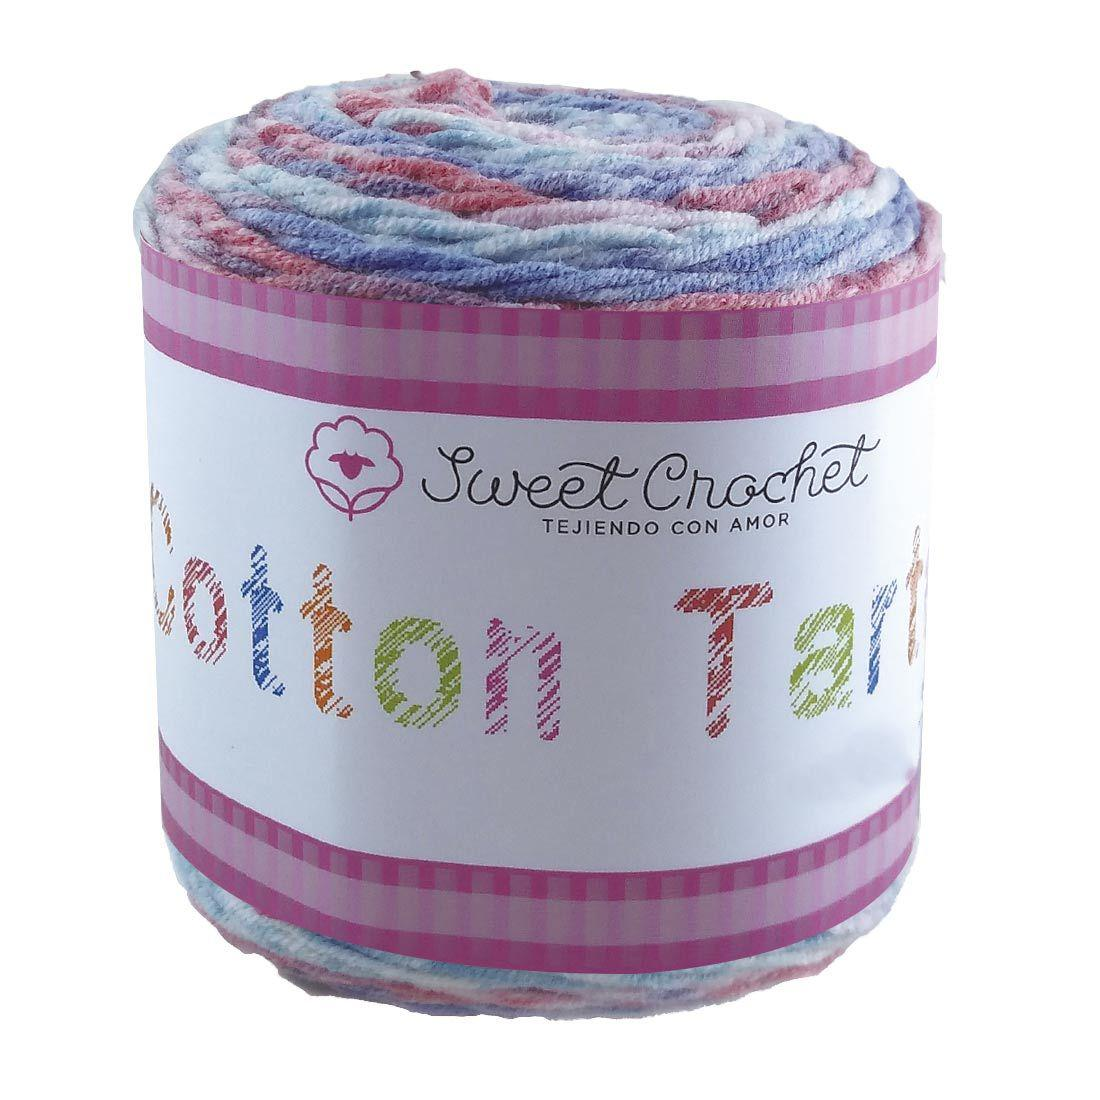 Estambre Cotton Tarta Degradado, Marca Sweet Crochet, Madeja con 100gr